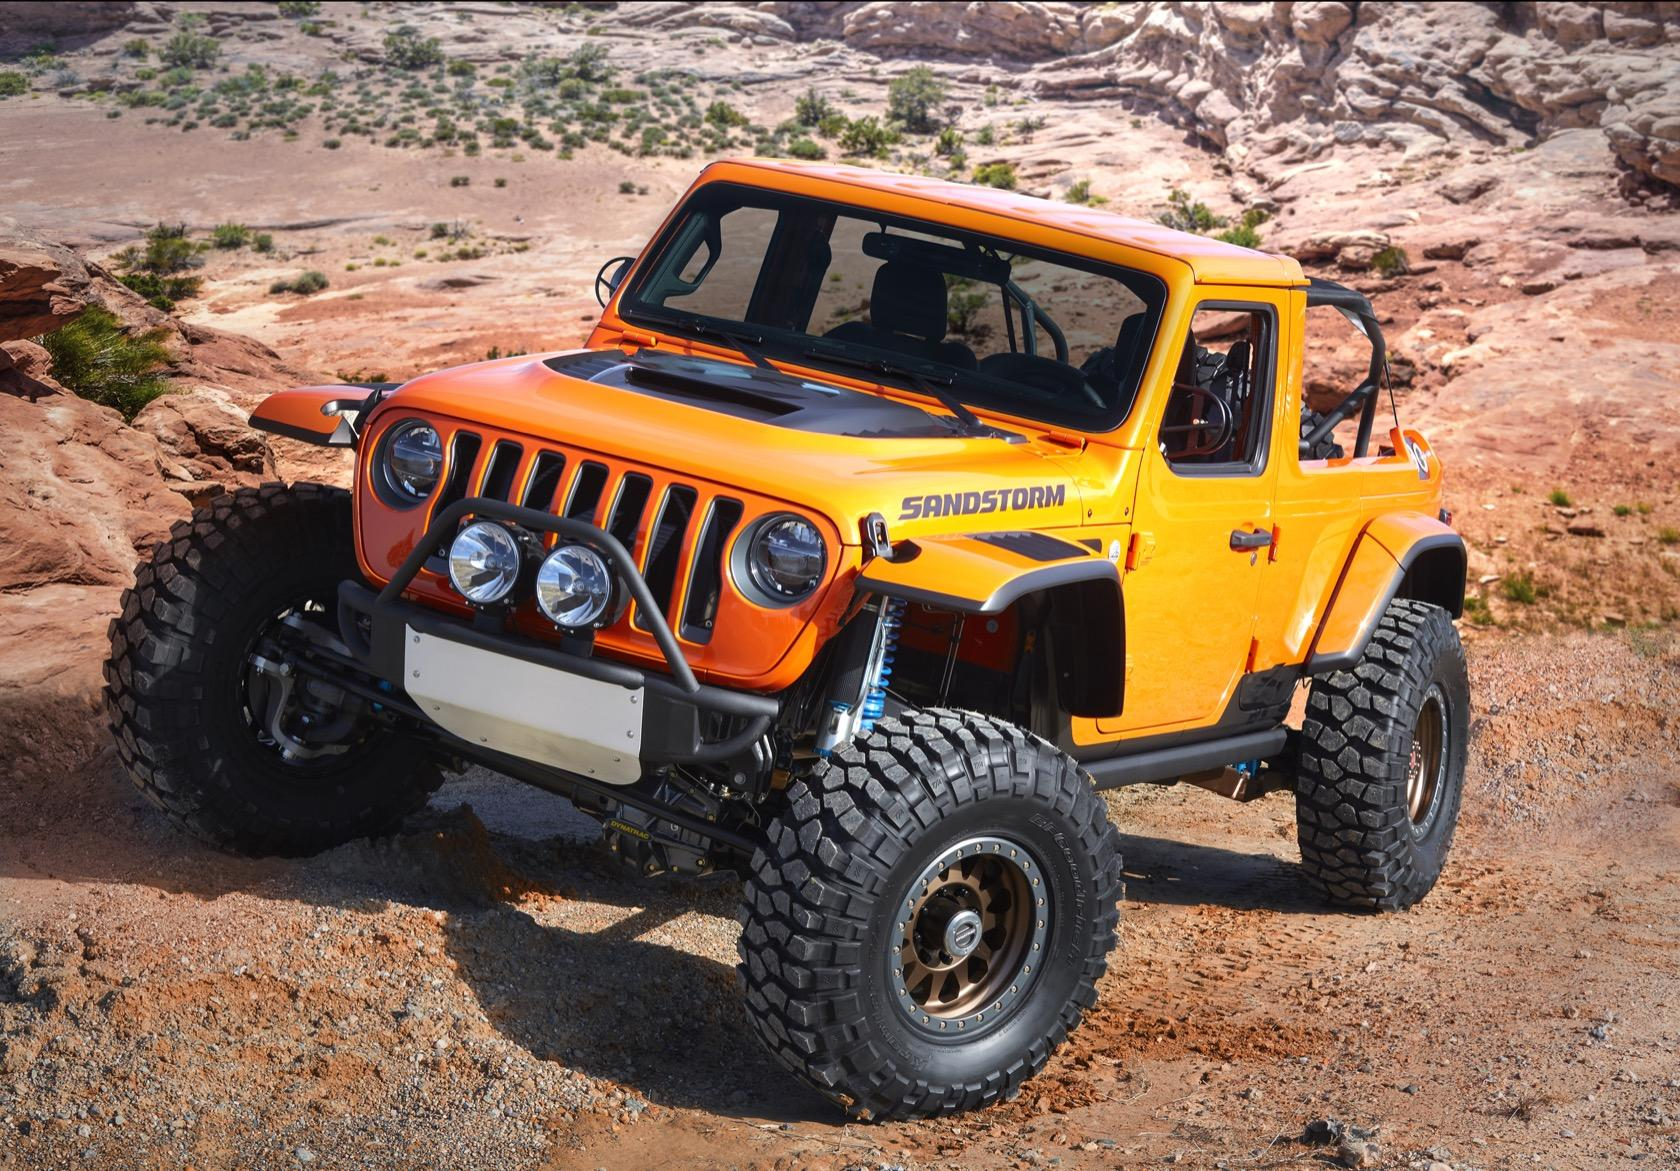 These 7 Jeep Safari concepts span Retro to Baja beast